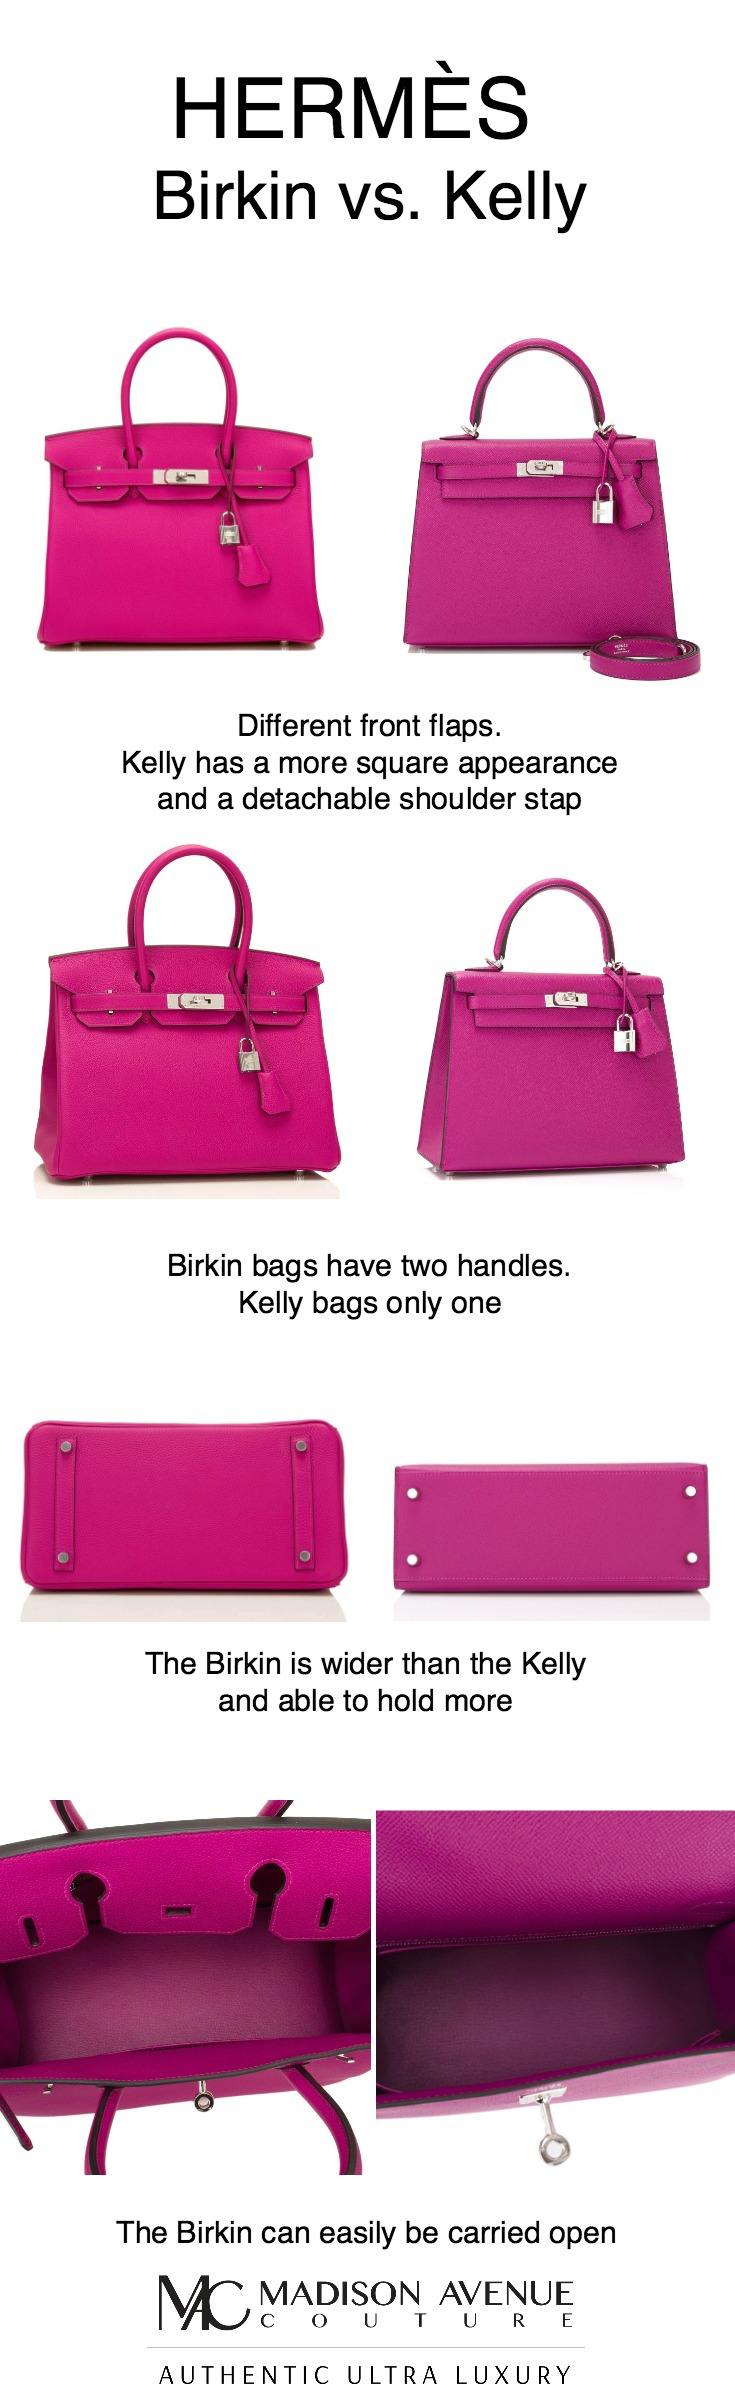 Birkin vs. Kelly bag